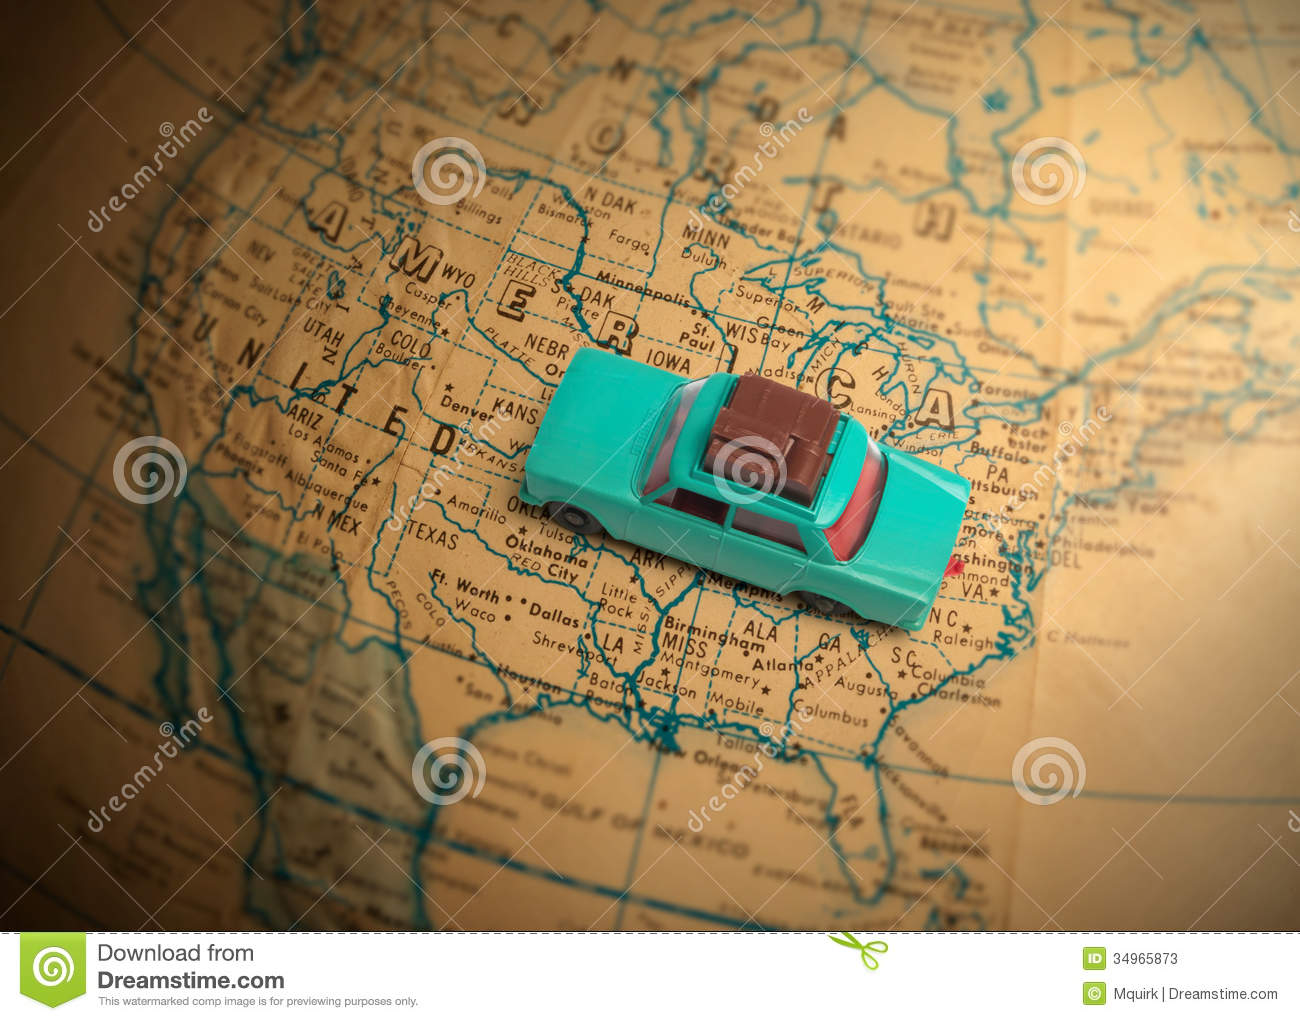 Toy car with luggage on a vintage globe map of the United States with ...